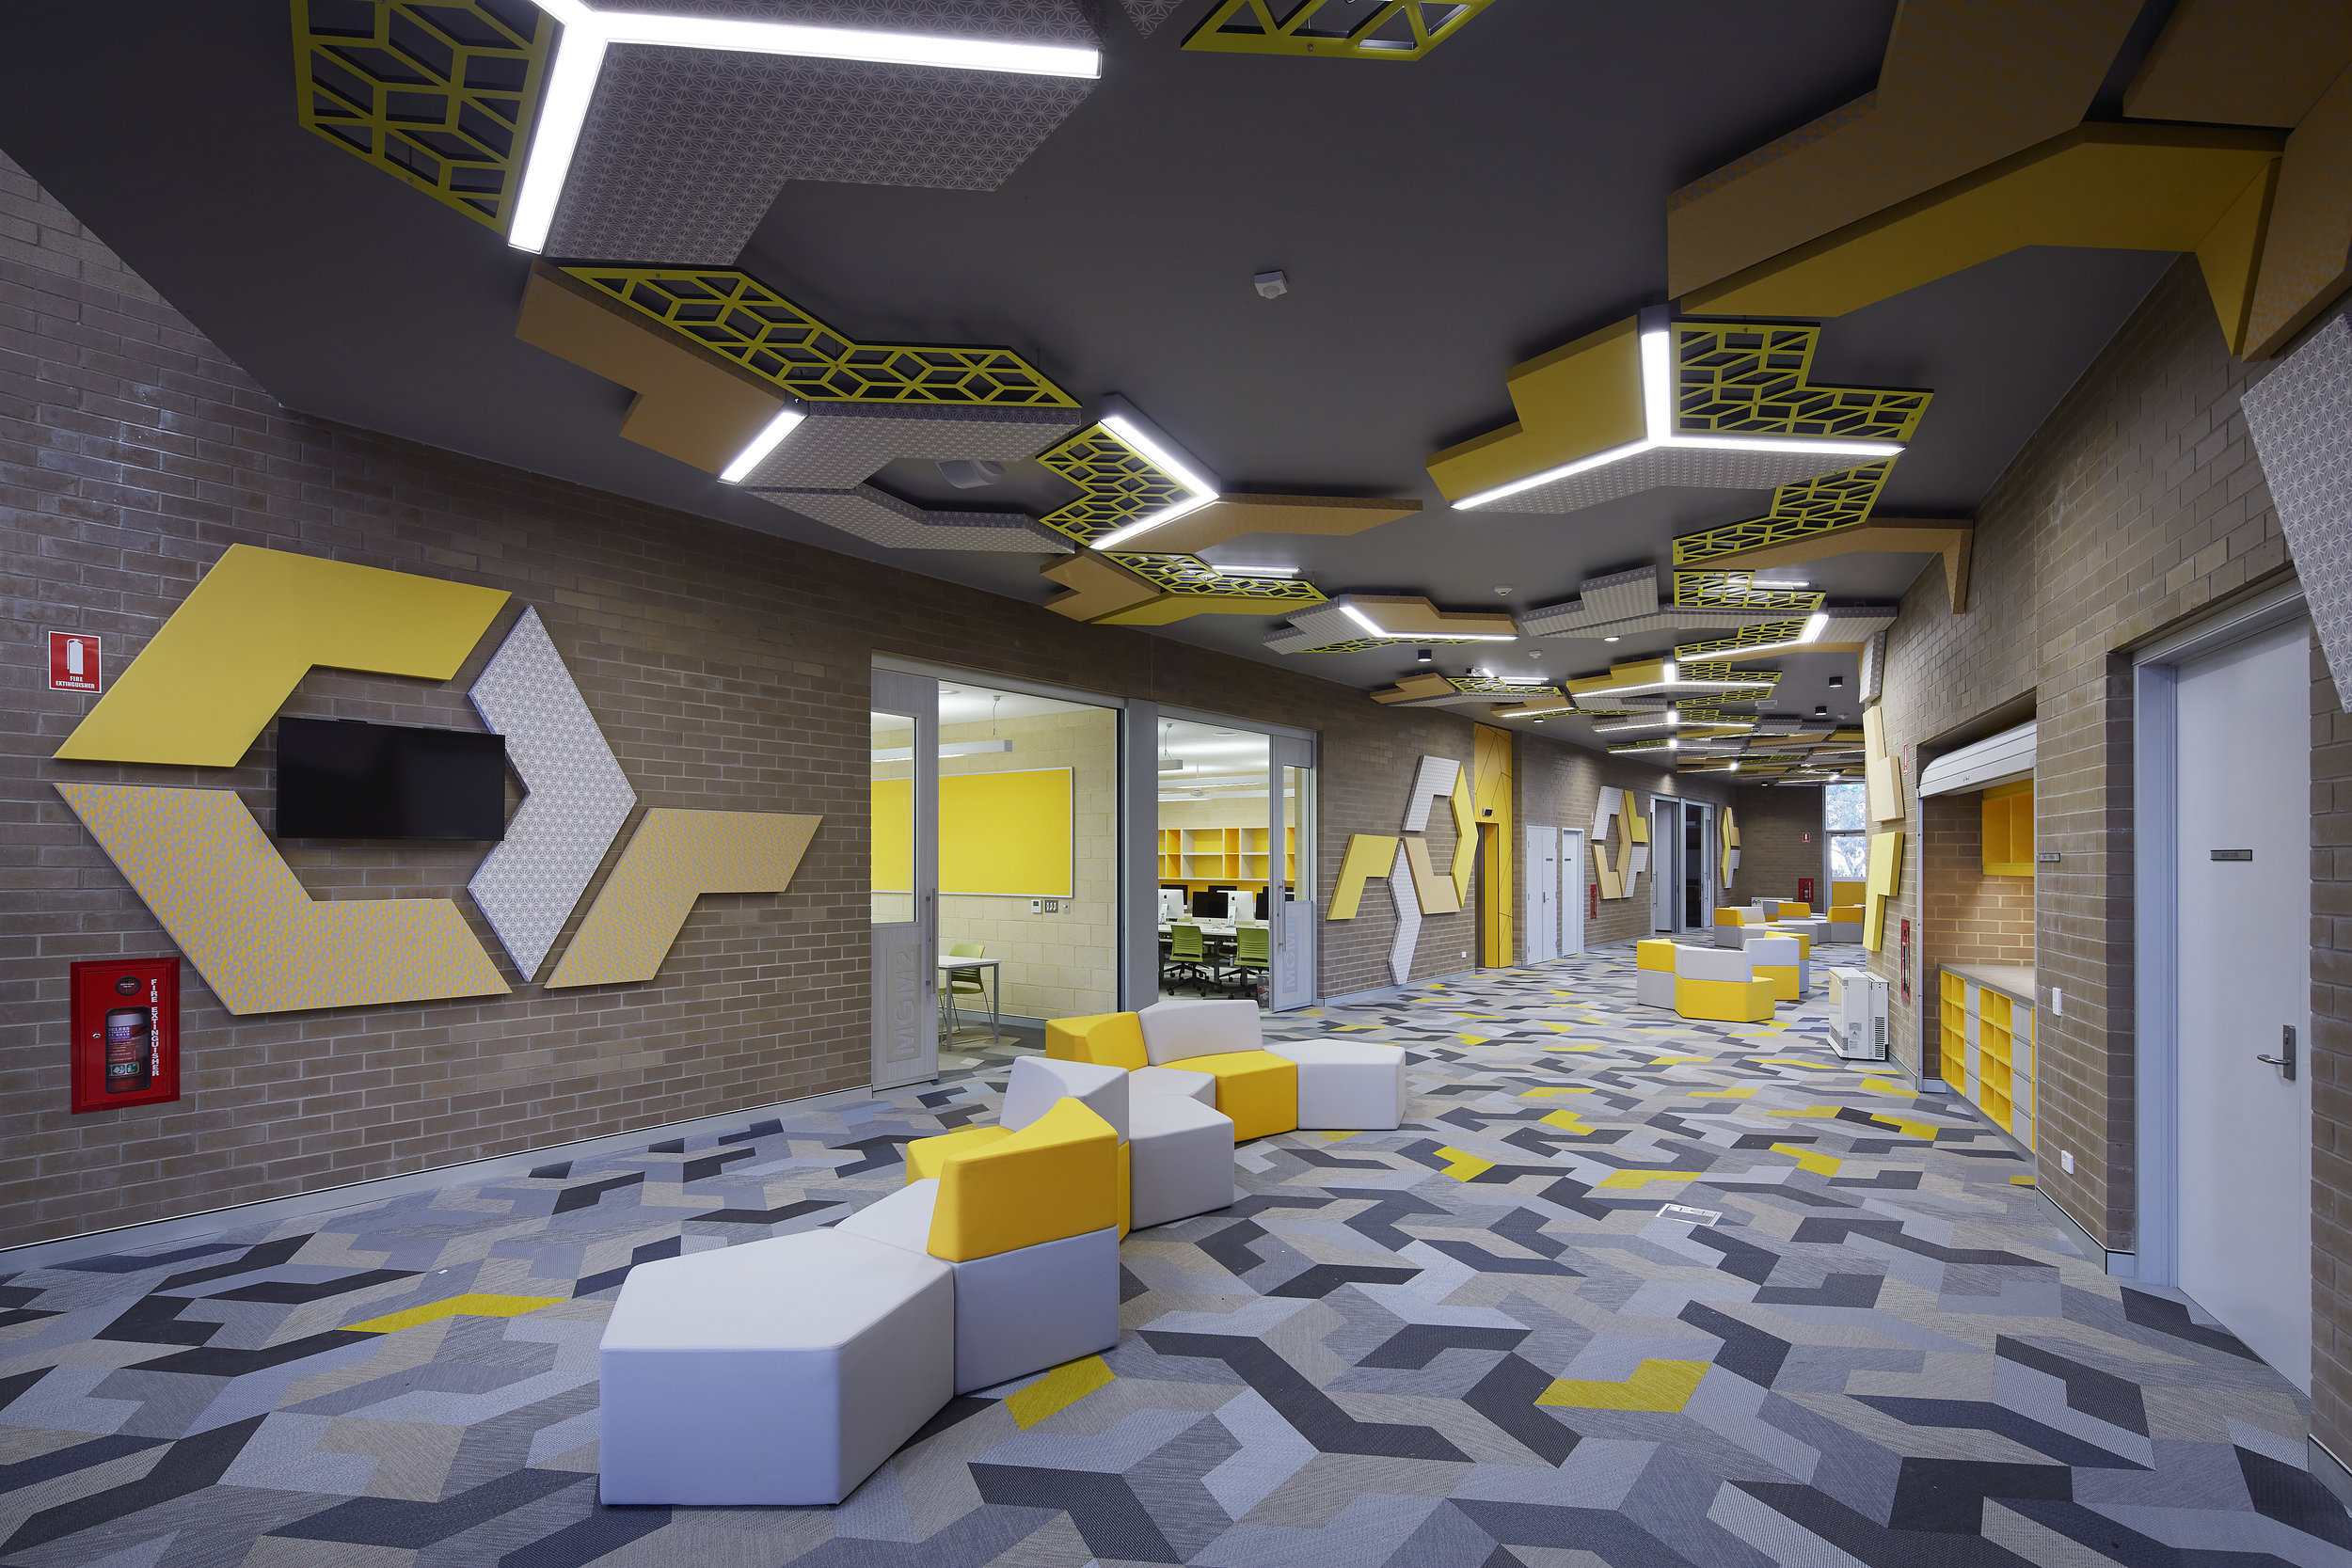 DYNAMIC MULTI FUNCTIONAL LEARNING AREA